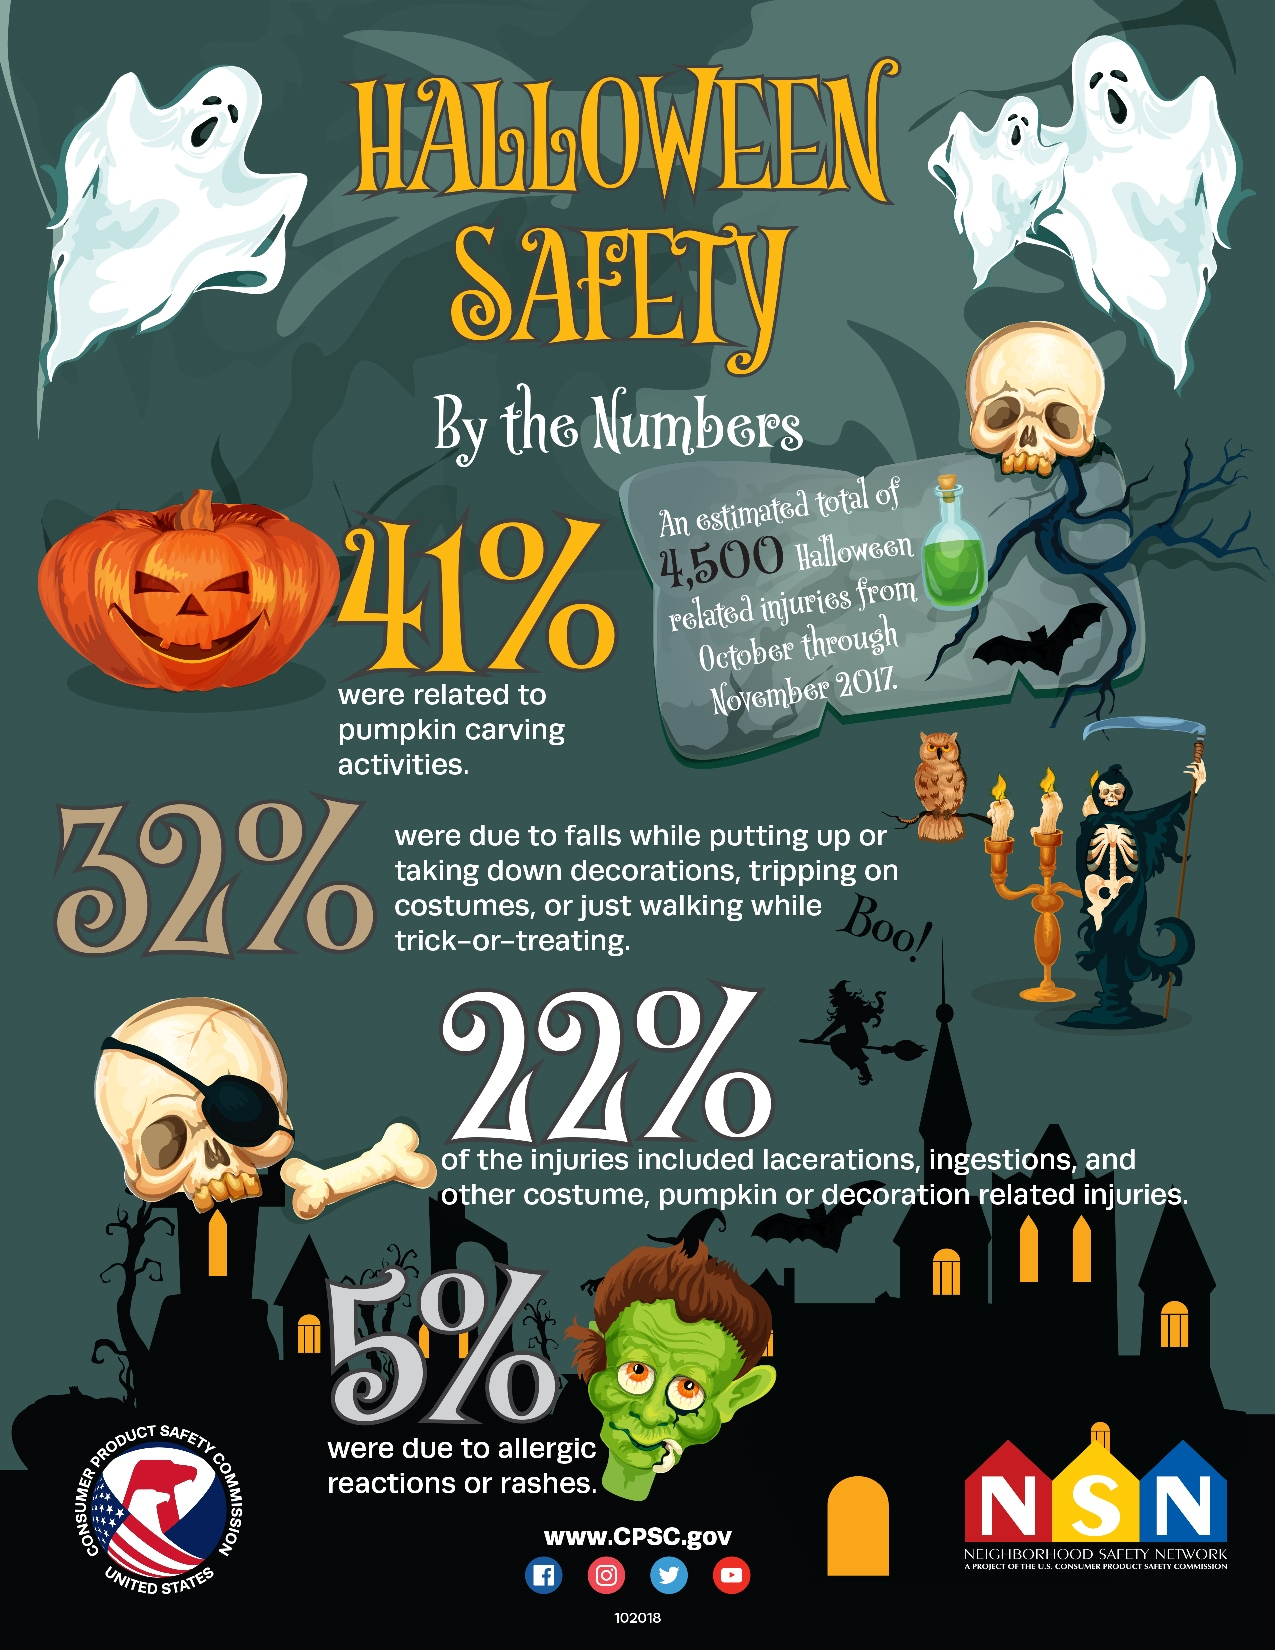 Onsafety Safety Tips For A Diy Halloween